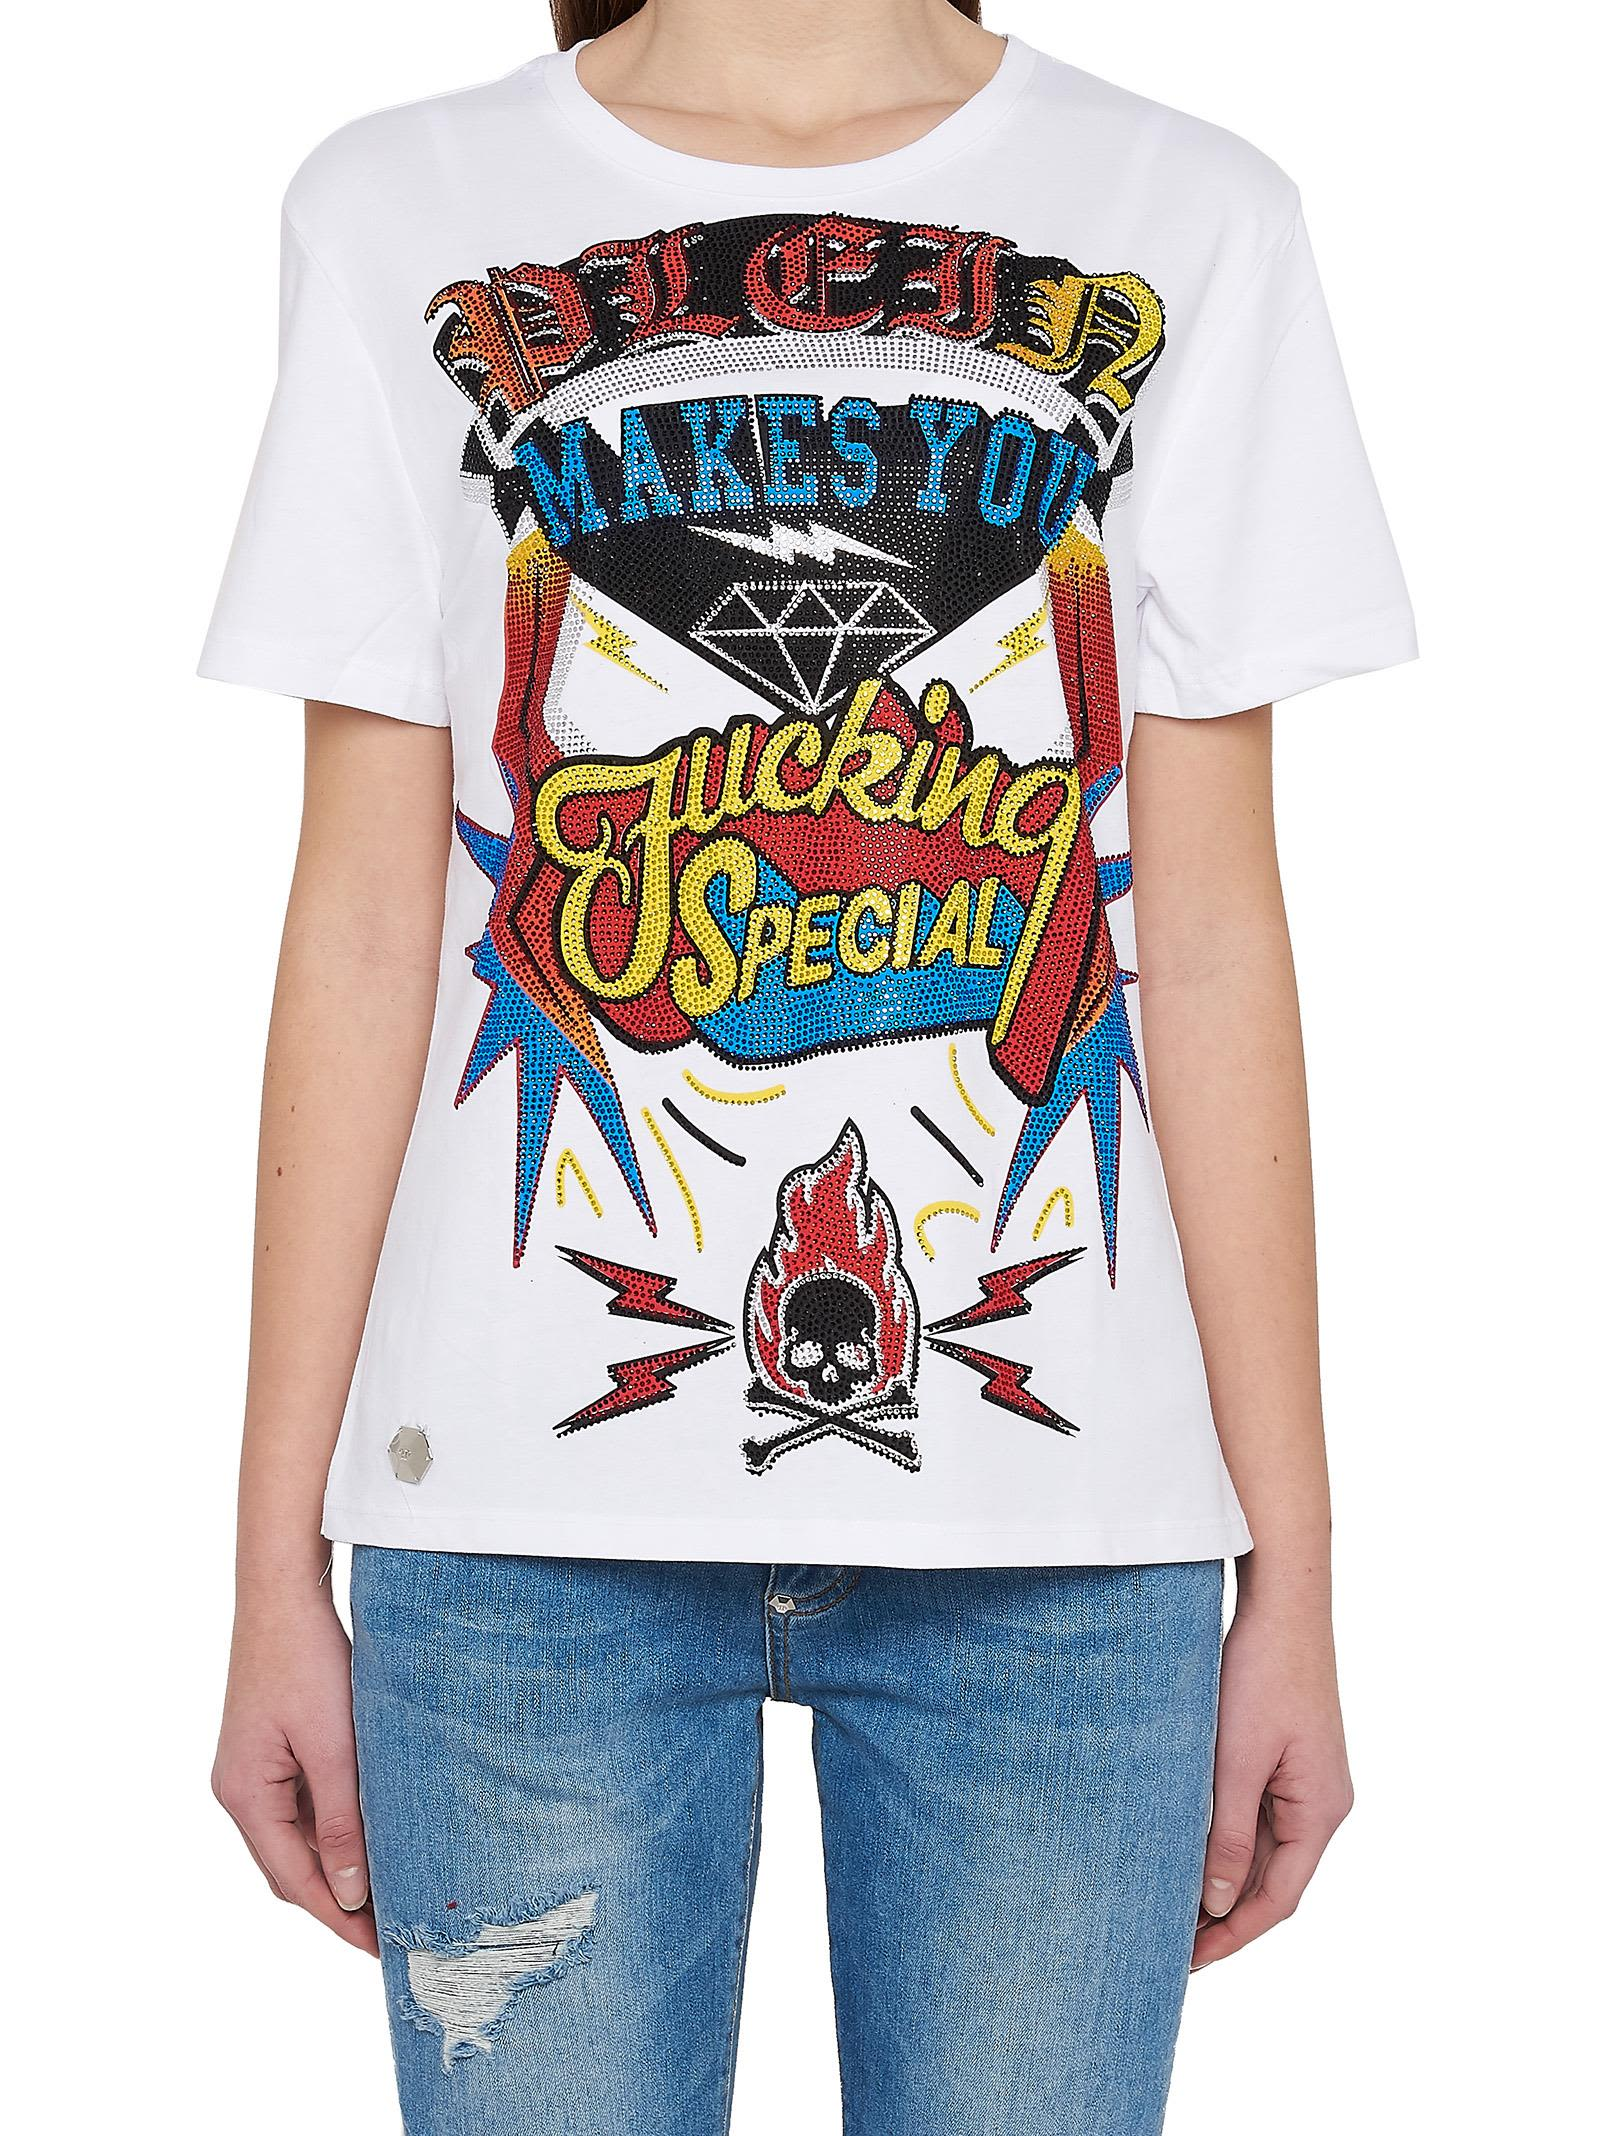 Philipp Plein Makes You Fucking Special T-shirt